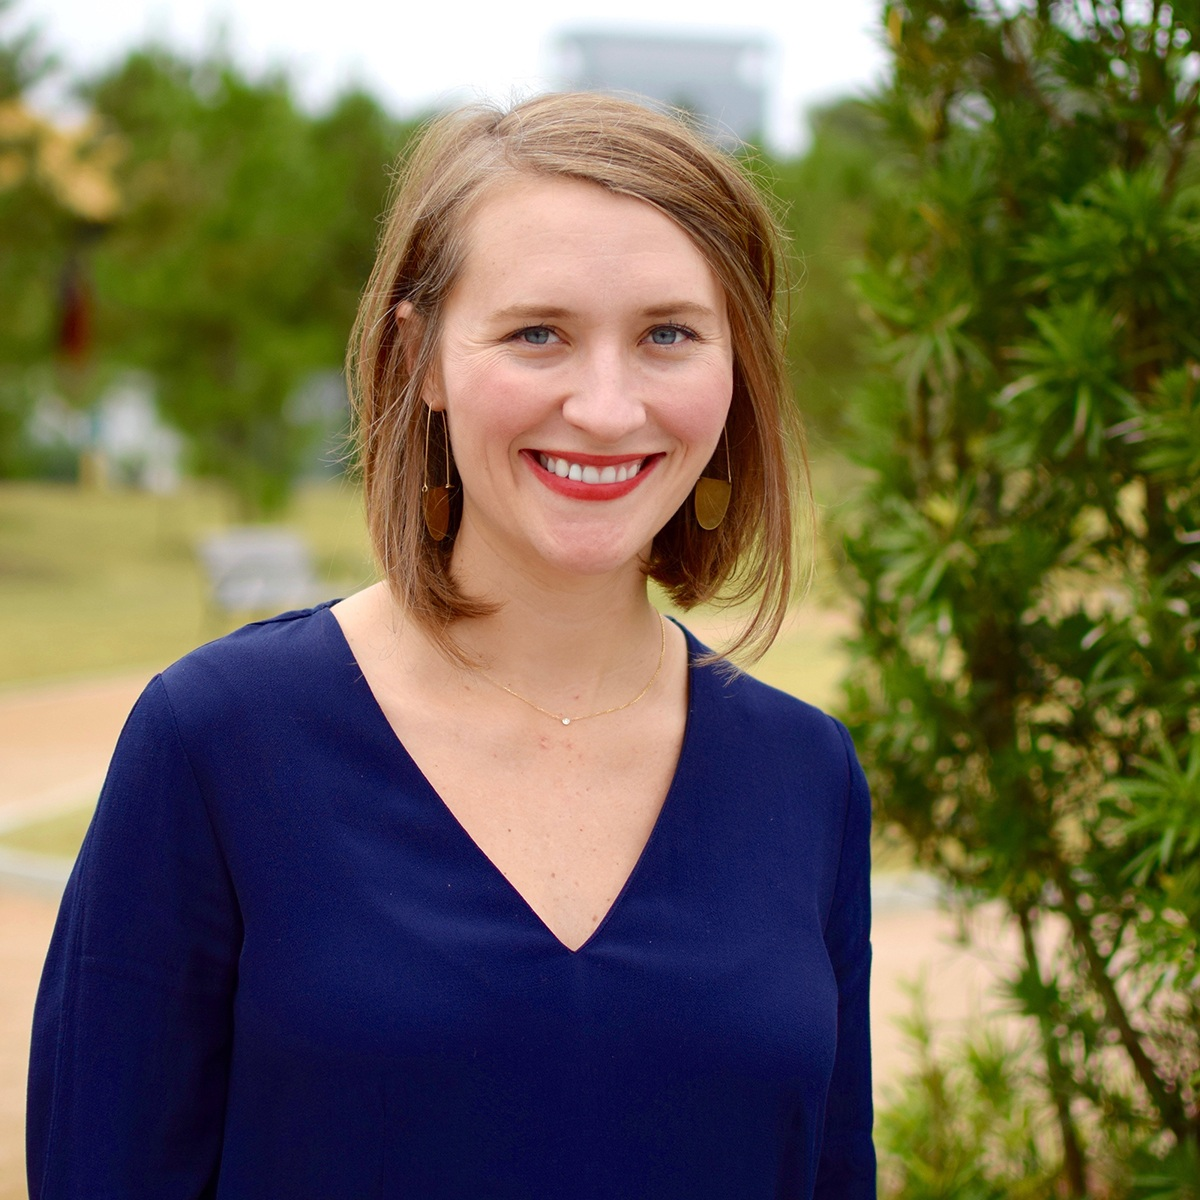 Whitney Radley - Whitney Radley is an account manager at CKP, focusing on public relations and communications strategic planning. She has expertise in media relations, branding, research, strategic communications planning and content creation.